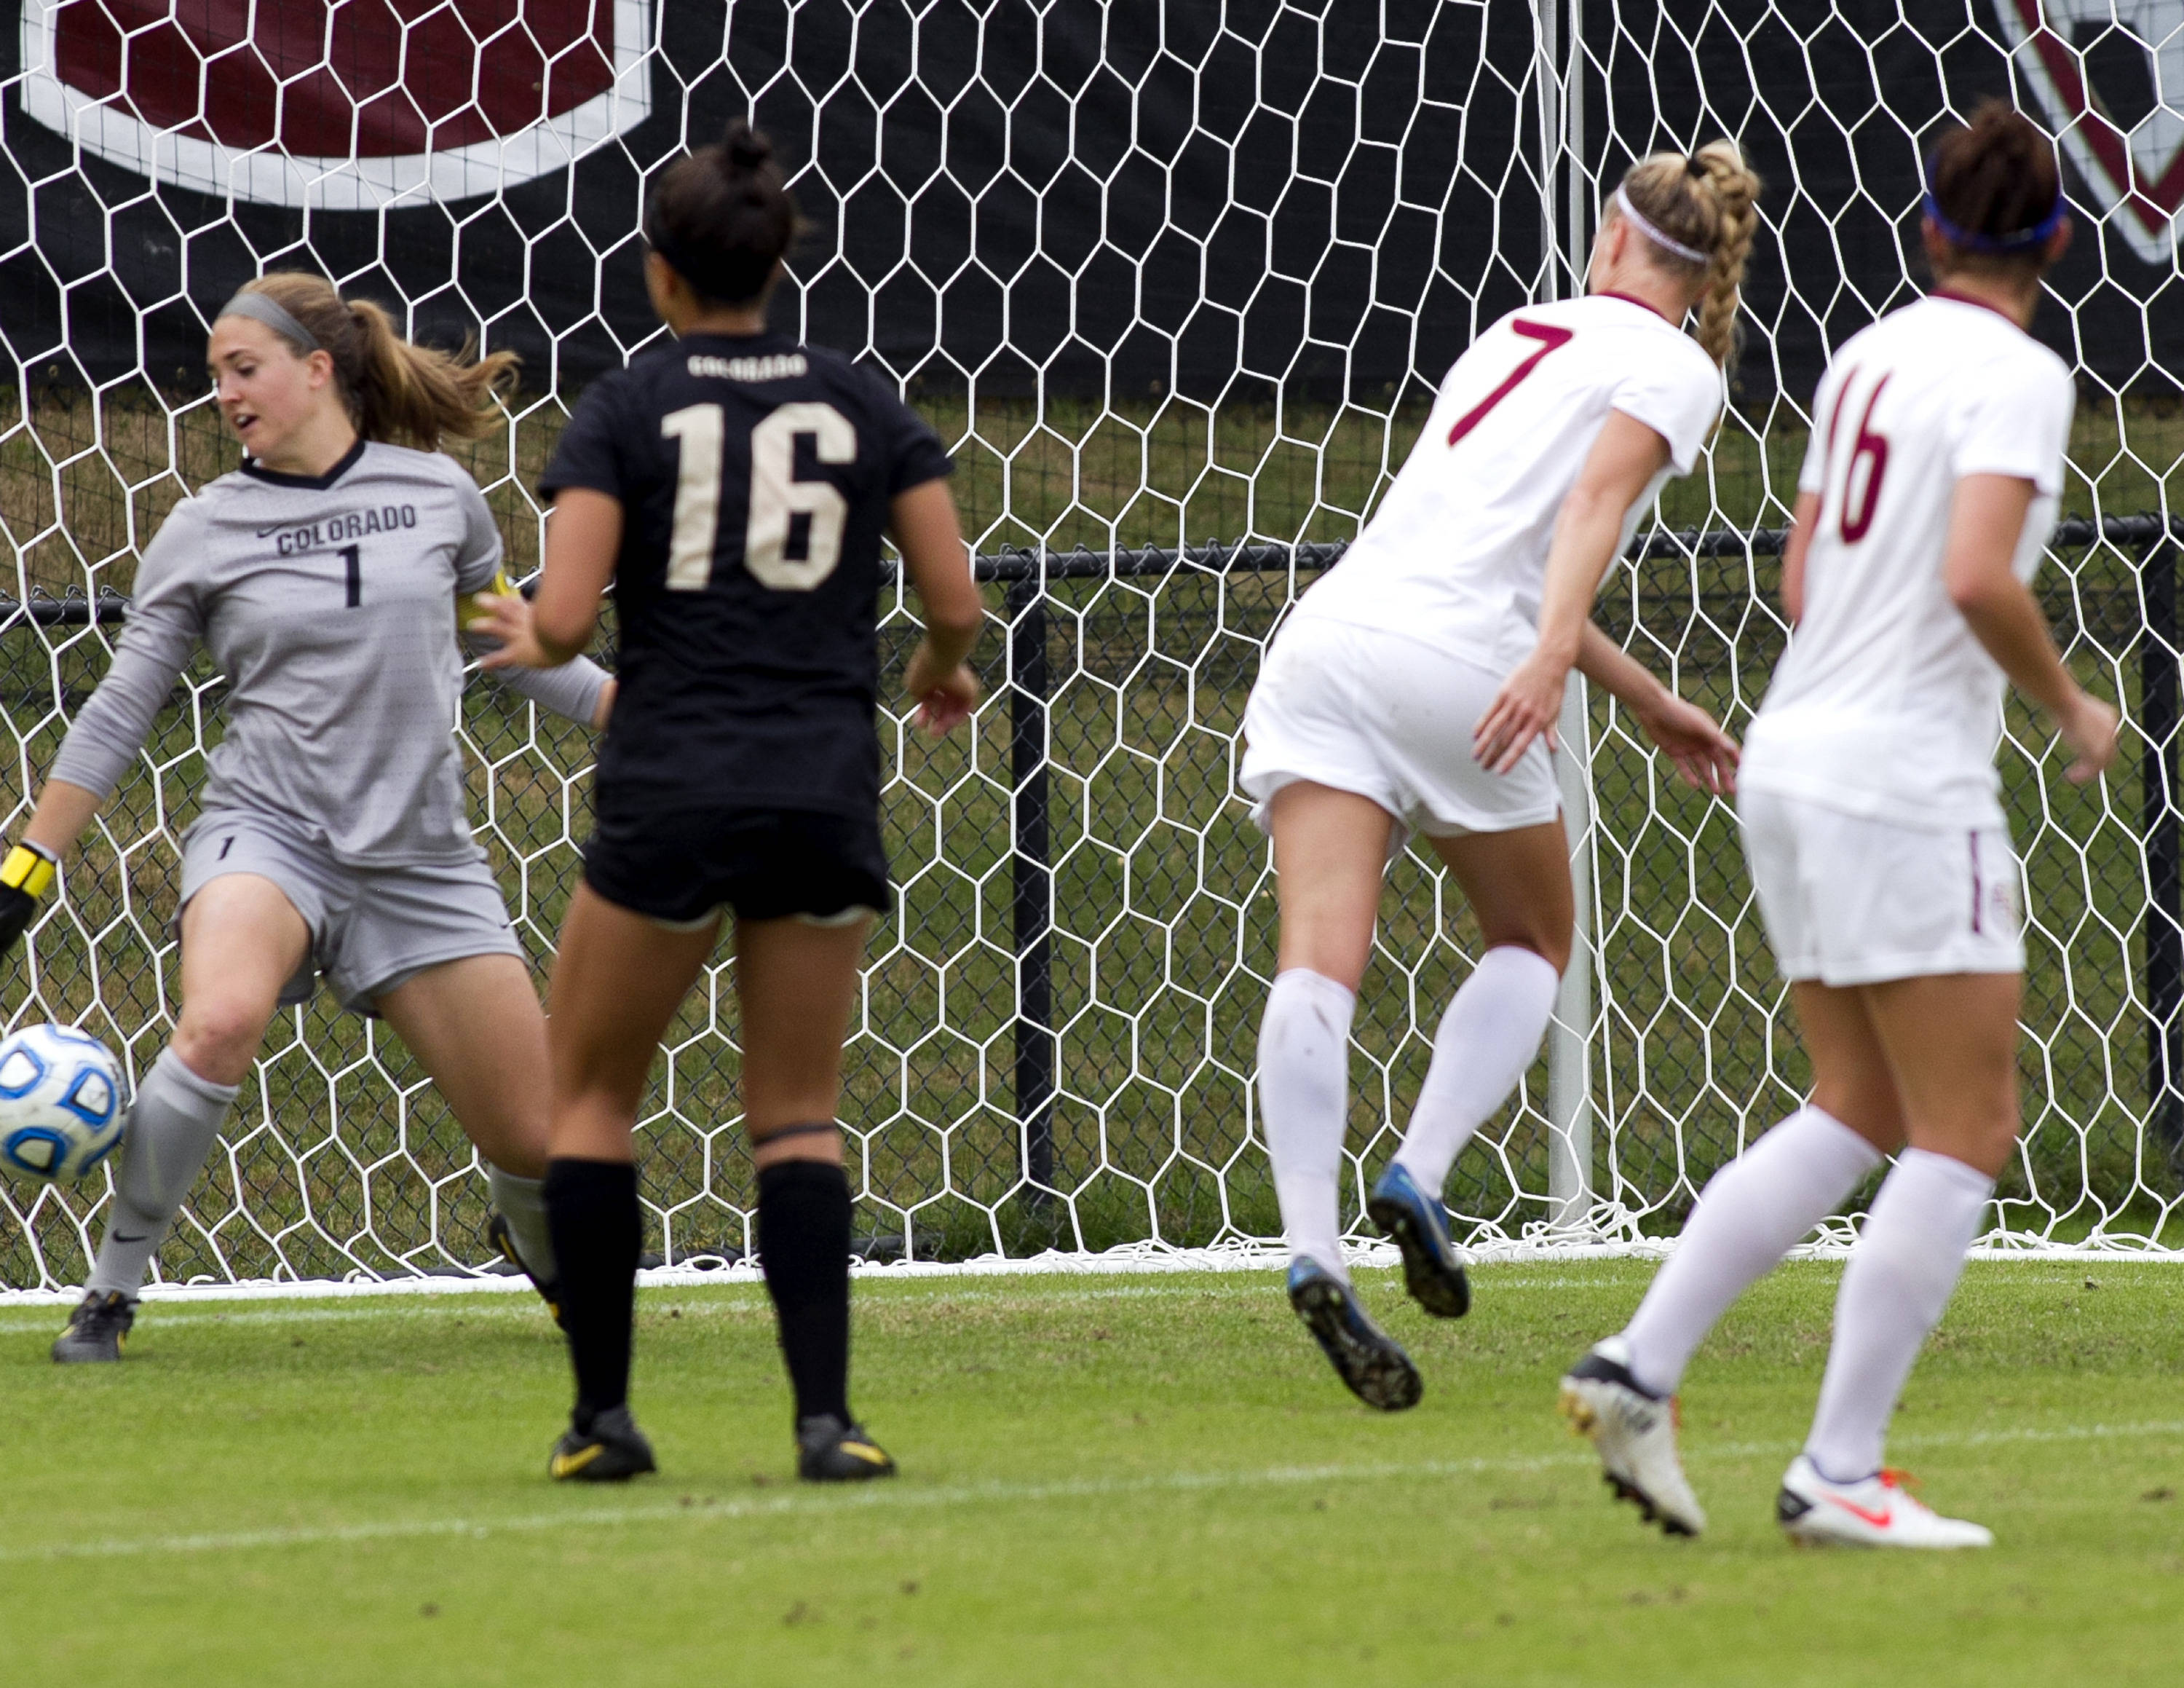 Dagny Brynjarsdottir (7) scoring her second goal on a header, FSU vs Colorado, 11-23-13, 3rd round NCAA Tournament (Photo by Steve Musco)